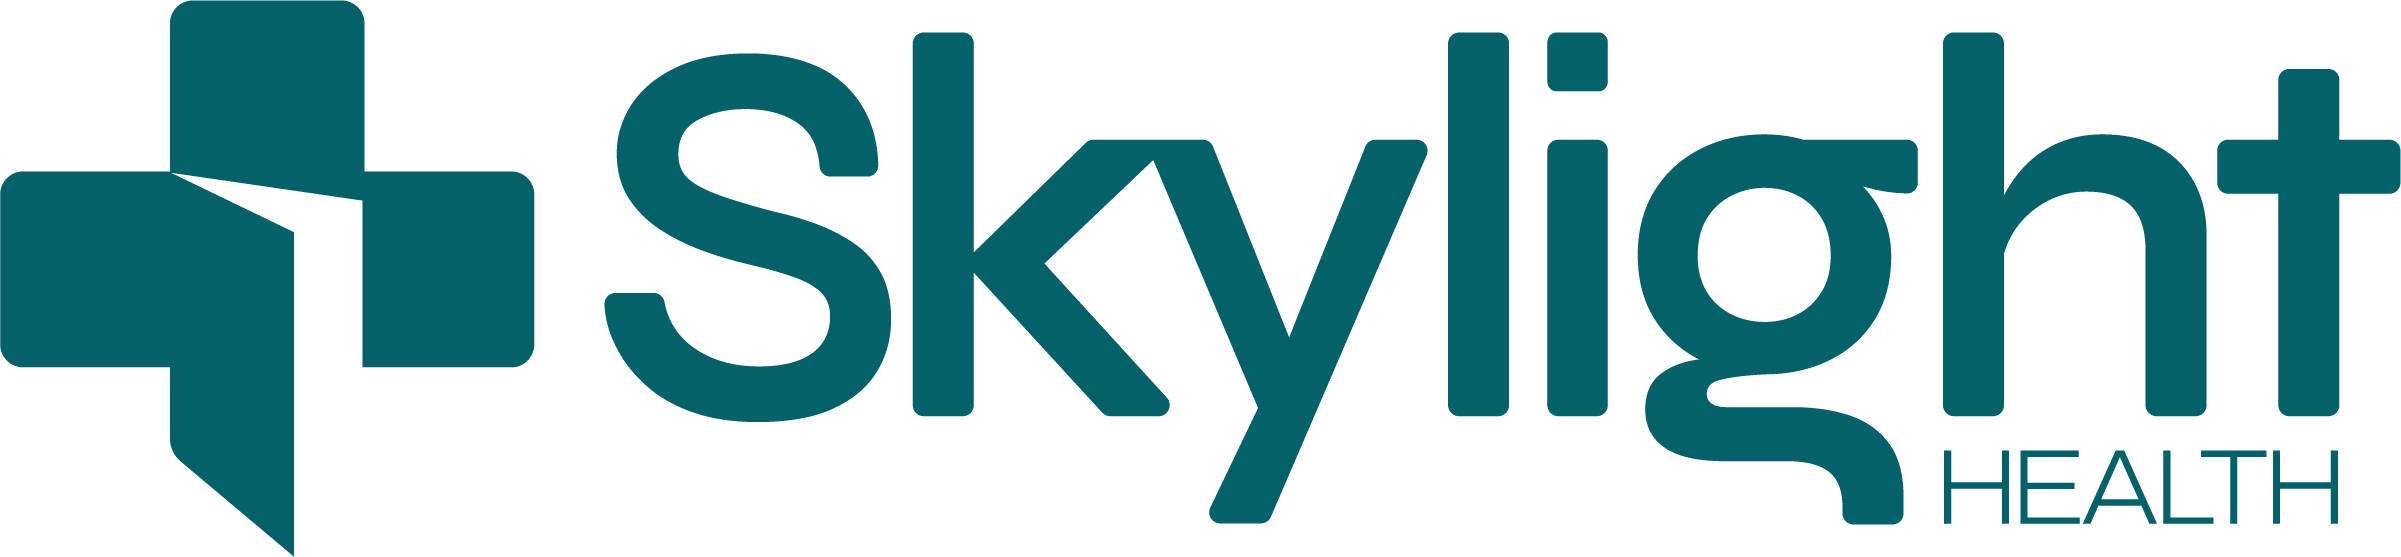 Skylight Health Announces Closing of Florida Clinic with 2020 Performance of $6MM in Revenue and $1